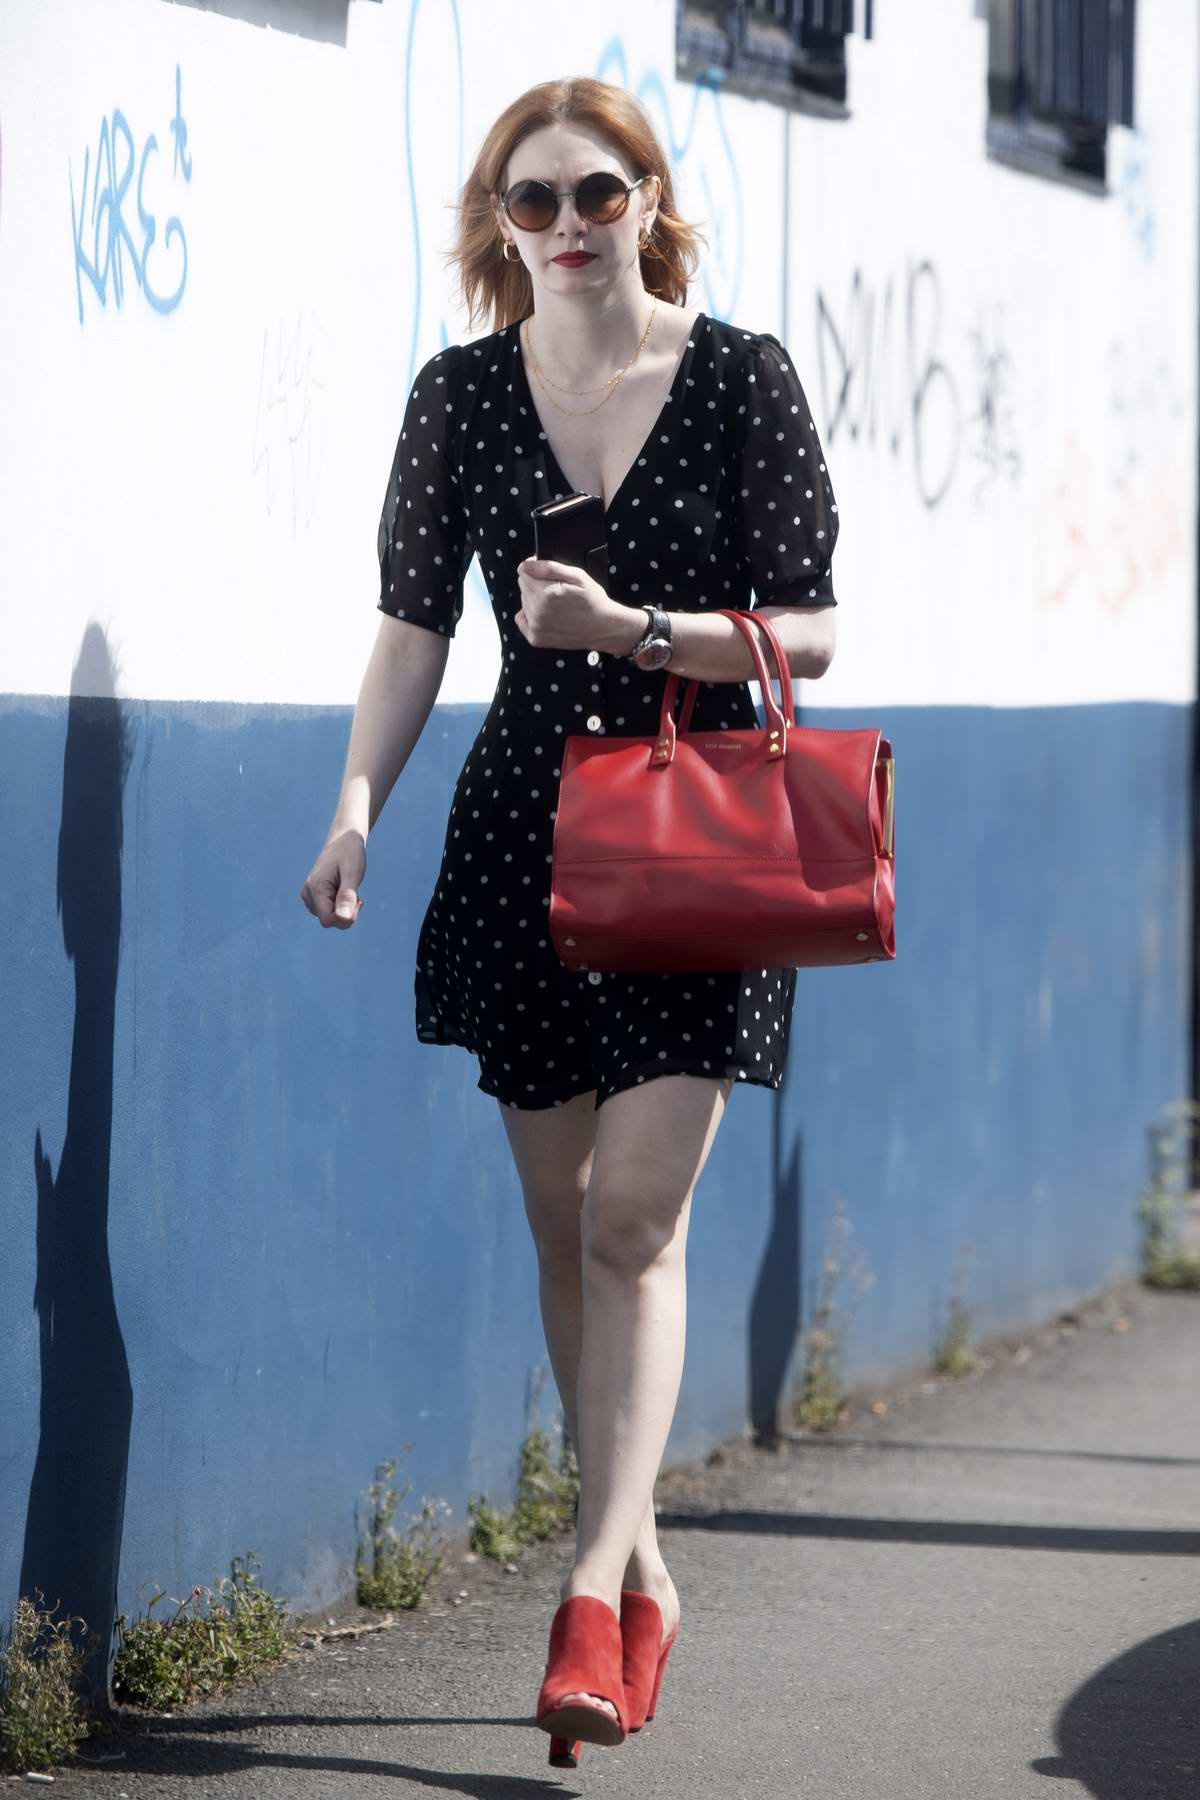 Eleanor Tomlinson debuts a new hair style as she walks to her local train station in London, UK